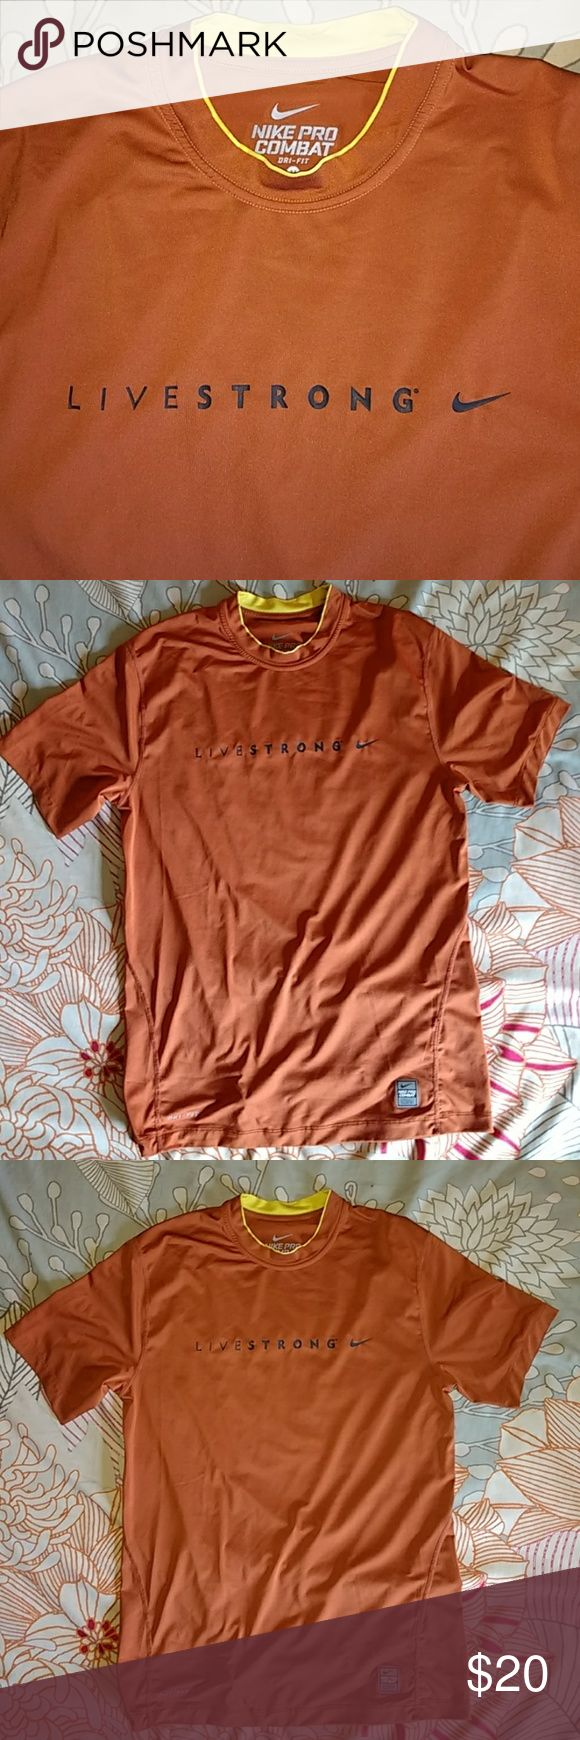 Nike Livestrong Pro Combat orange shirt sz MD Nike Livestrong Pro Combat orange shirt sz MD   This shirt has a fitted cut. It is pre-owned and in good condition. Nike Shirts Tees - Short Sleeve